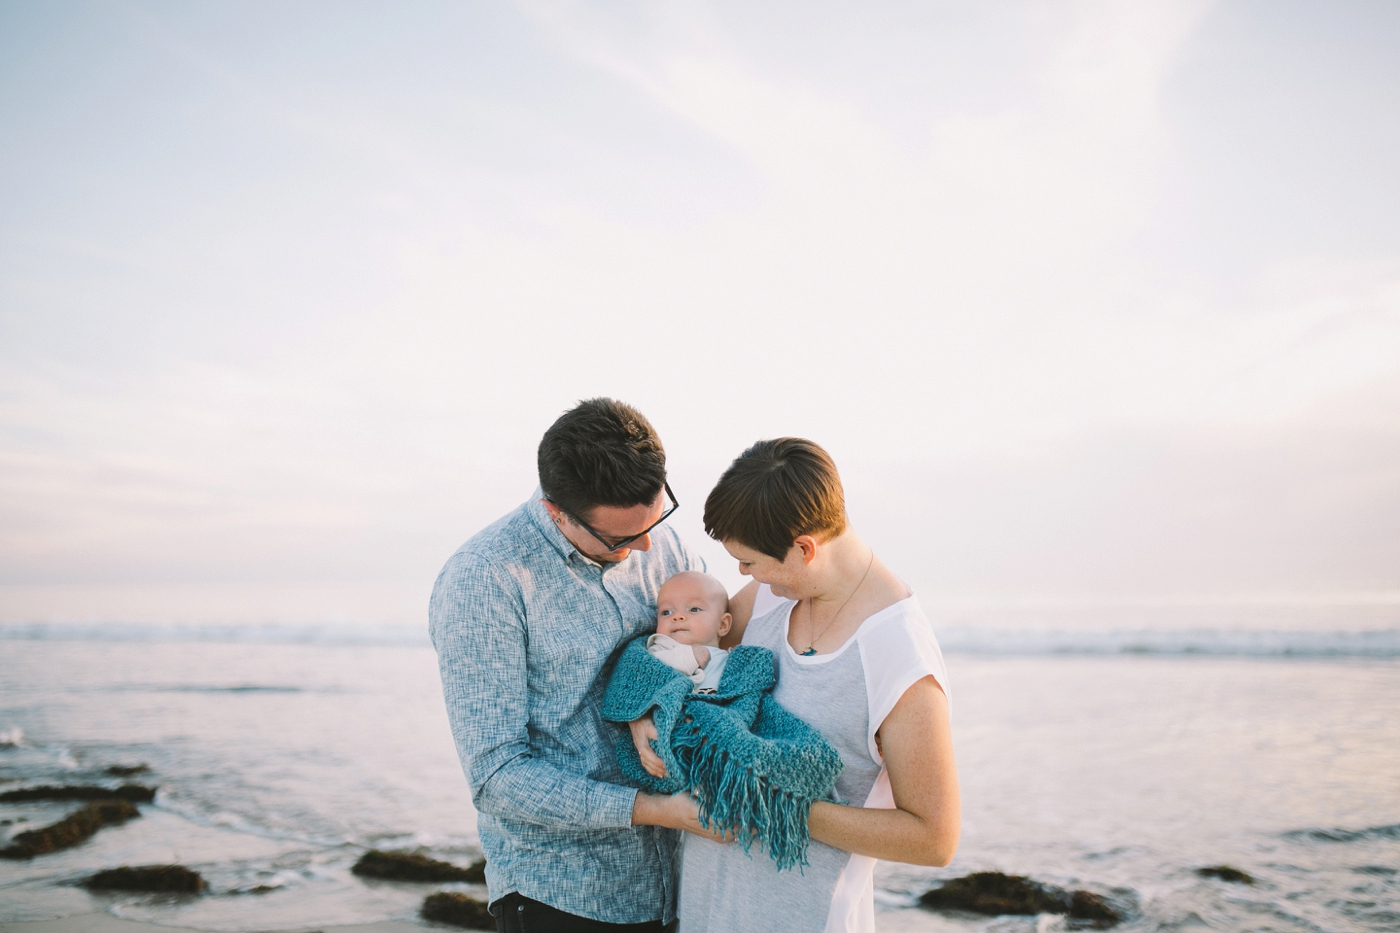 Kingsborough Family - Natural light, candid Family Photographer in Adelaide - Katherine Schultz - www.katherineschultzphotography.com - 1